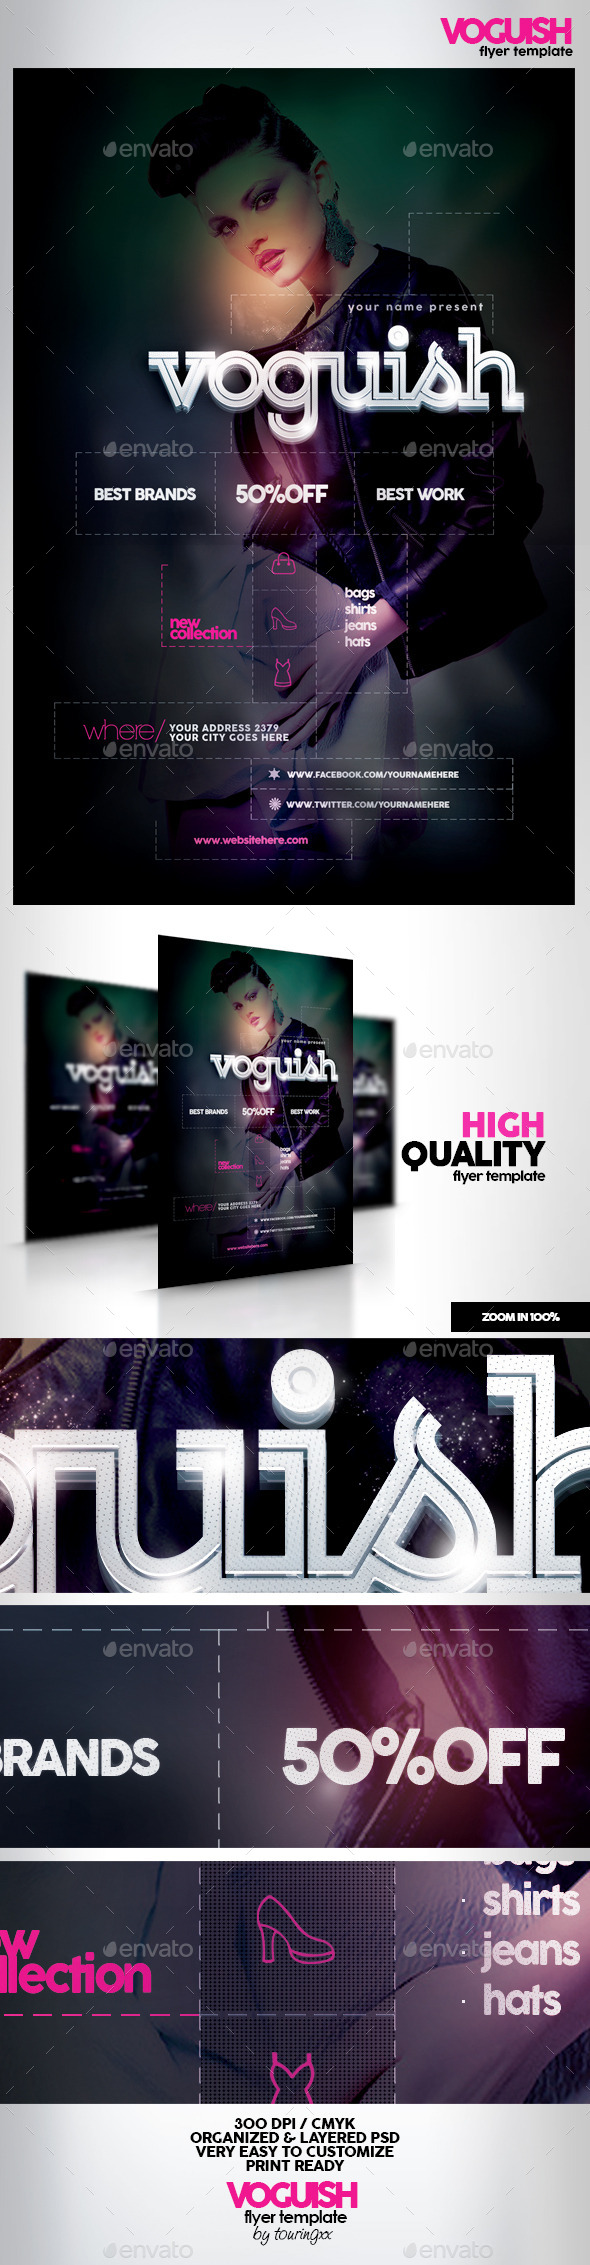 Voguish Flyer Template - Flyers Print Templates